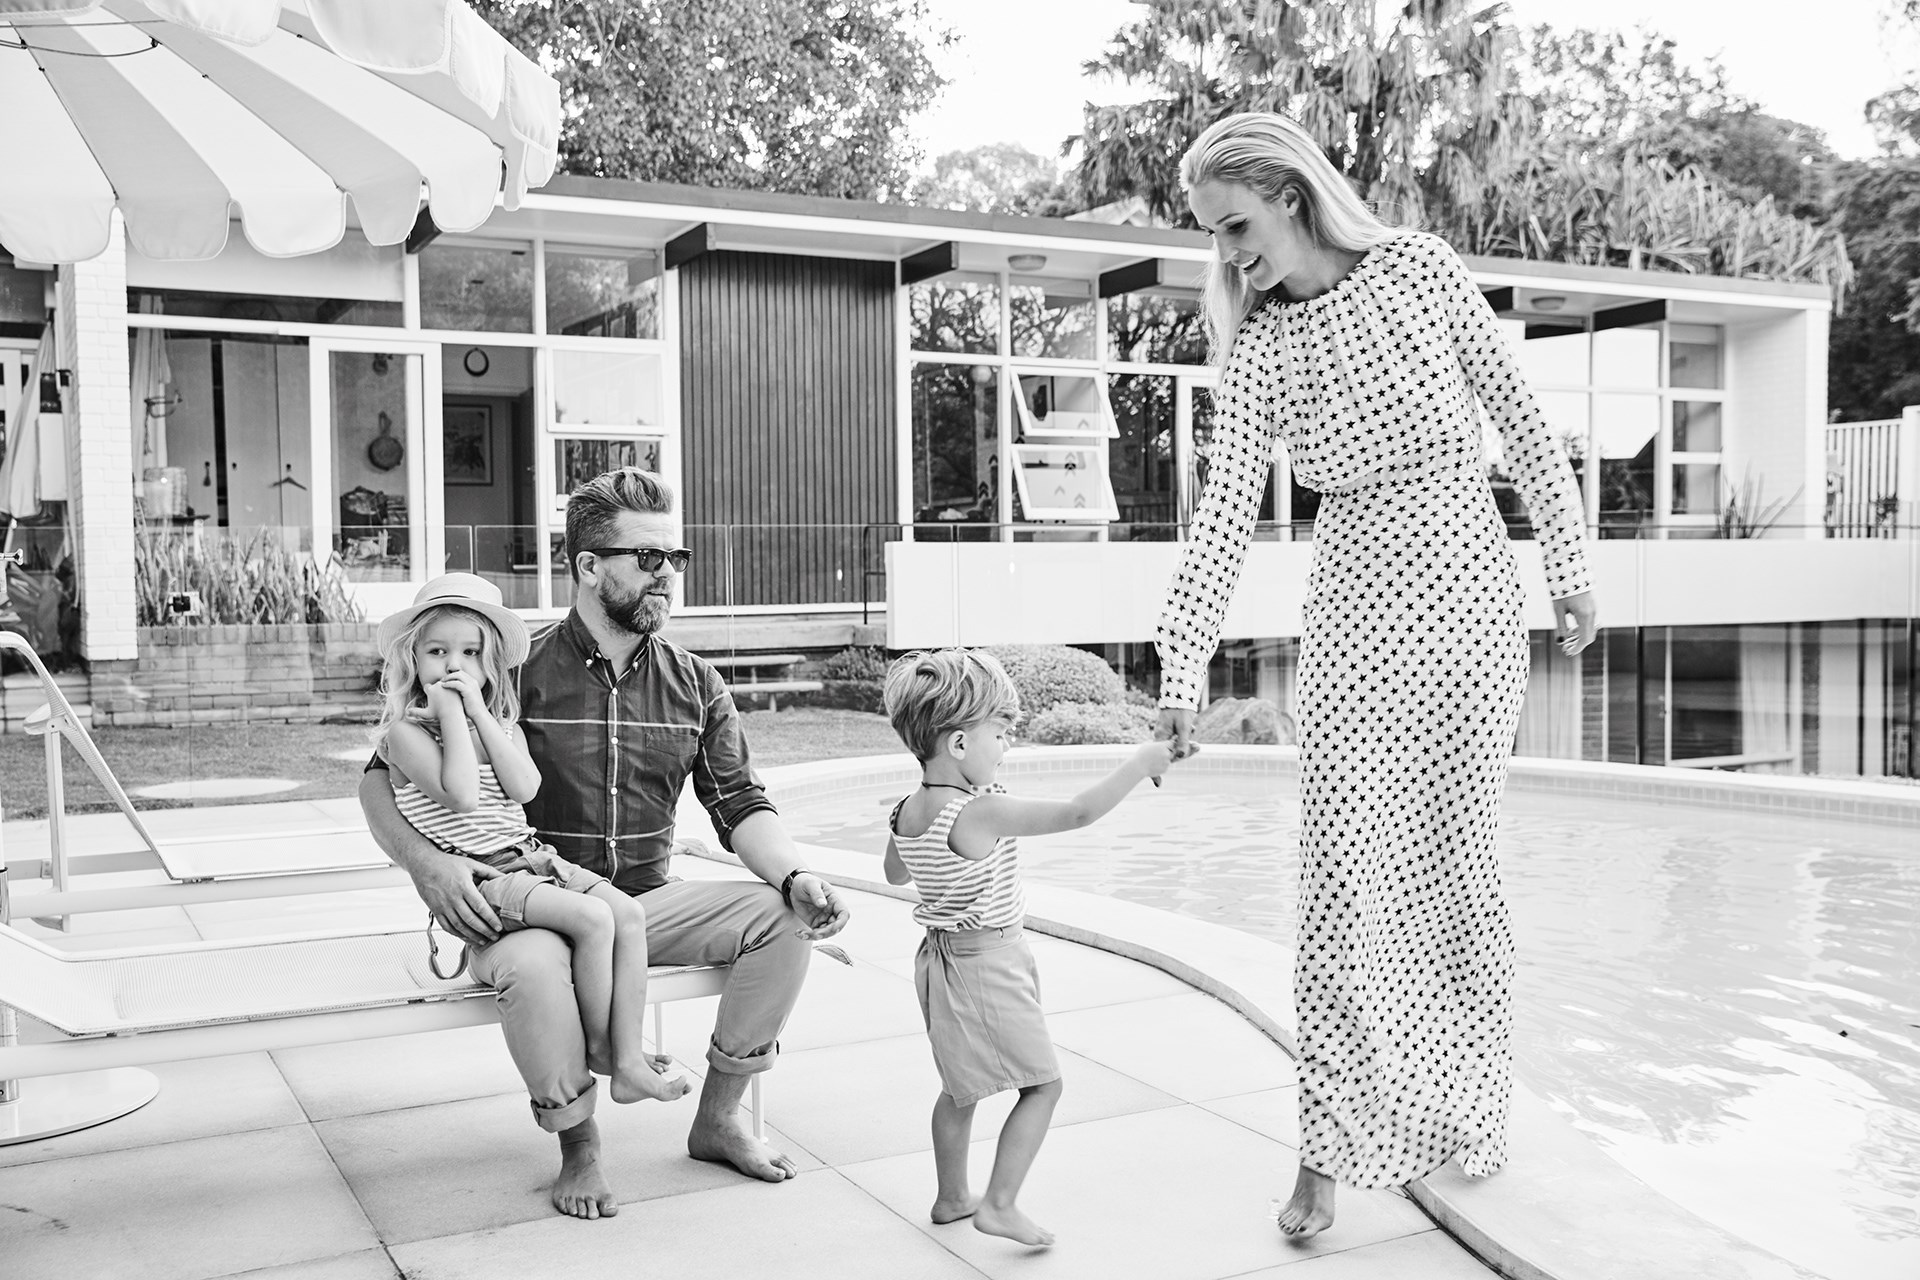 """[Comedian Tim and Michelle Ross' original 1950s home](http://www.homestolove.com.au/comedian-tim-ross-original-1950s-home-3980